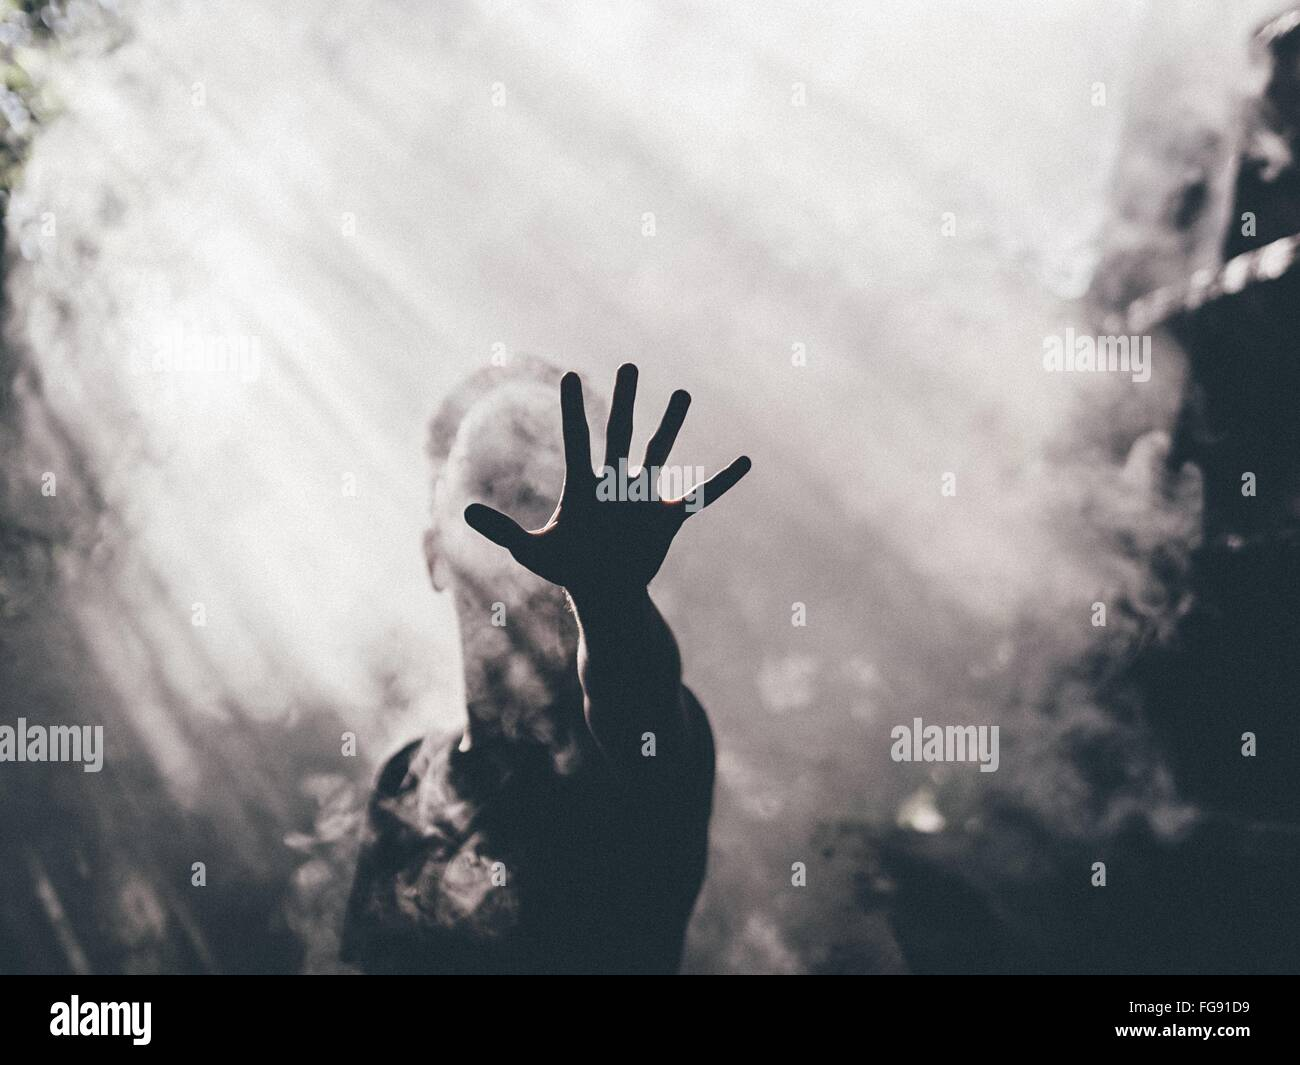 Man Showing Stop Gesture - Stock Image